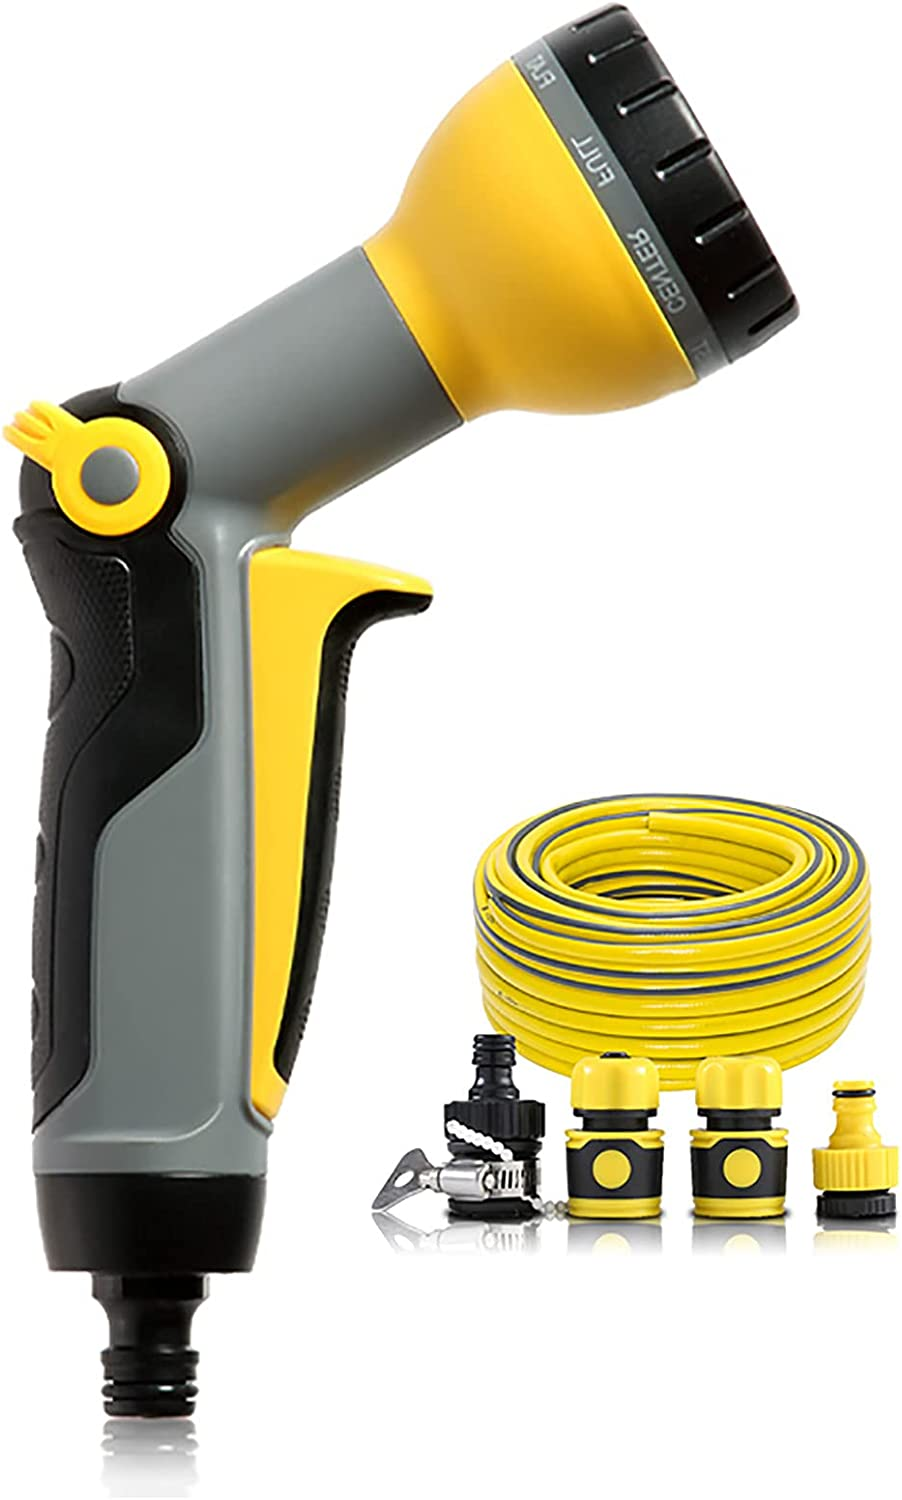 DLGF Garden Hose Max Discount mail order 88% OFF Nozzle All Standar Fits Pattern